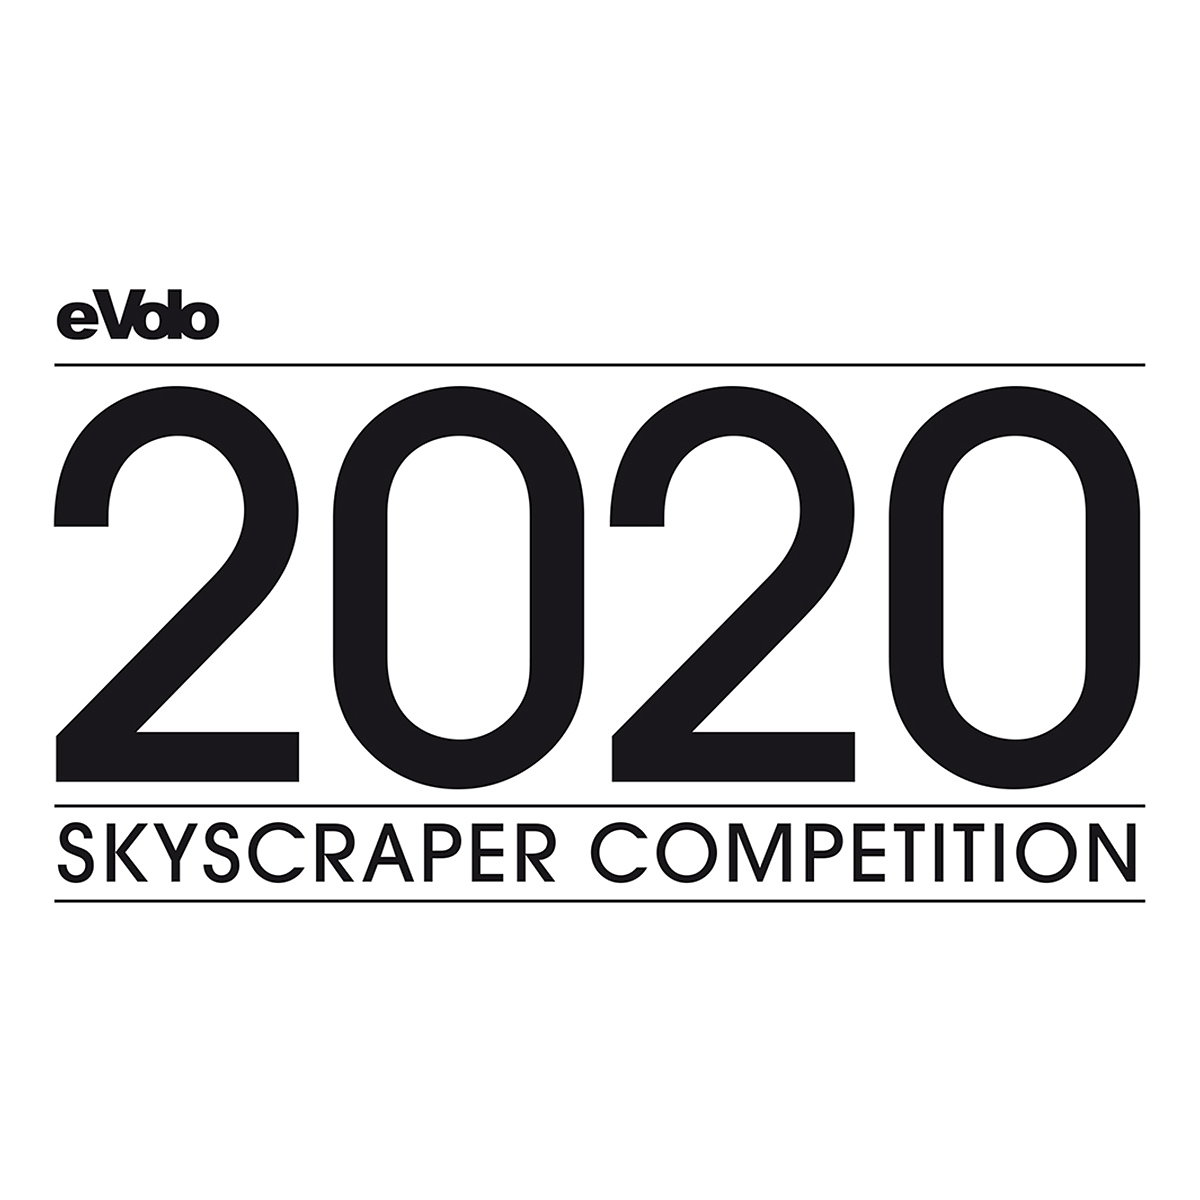 eVolo 2020 Skyscraper Competition